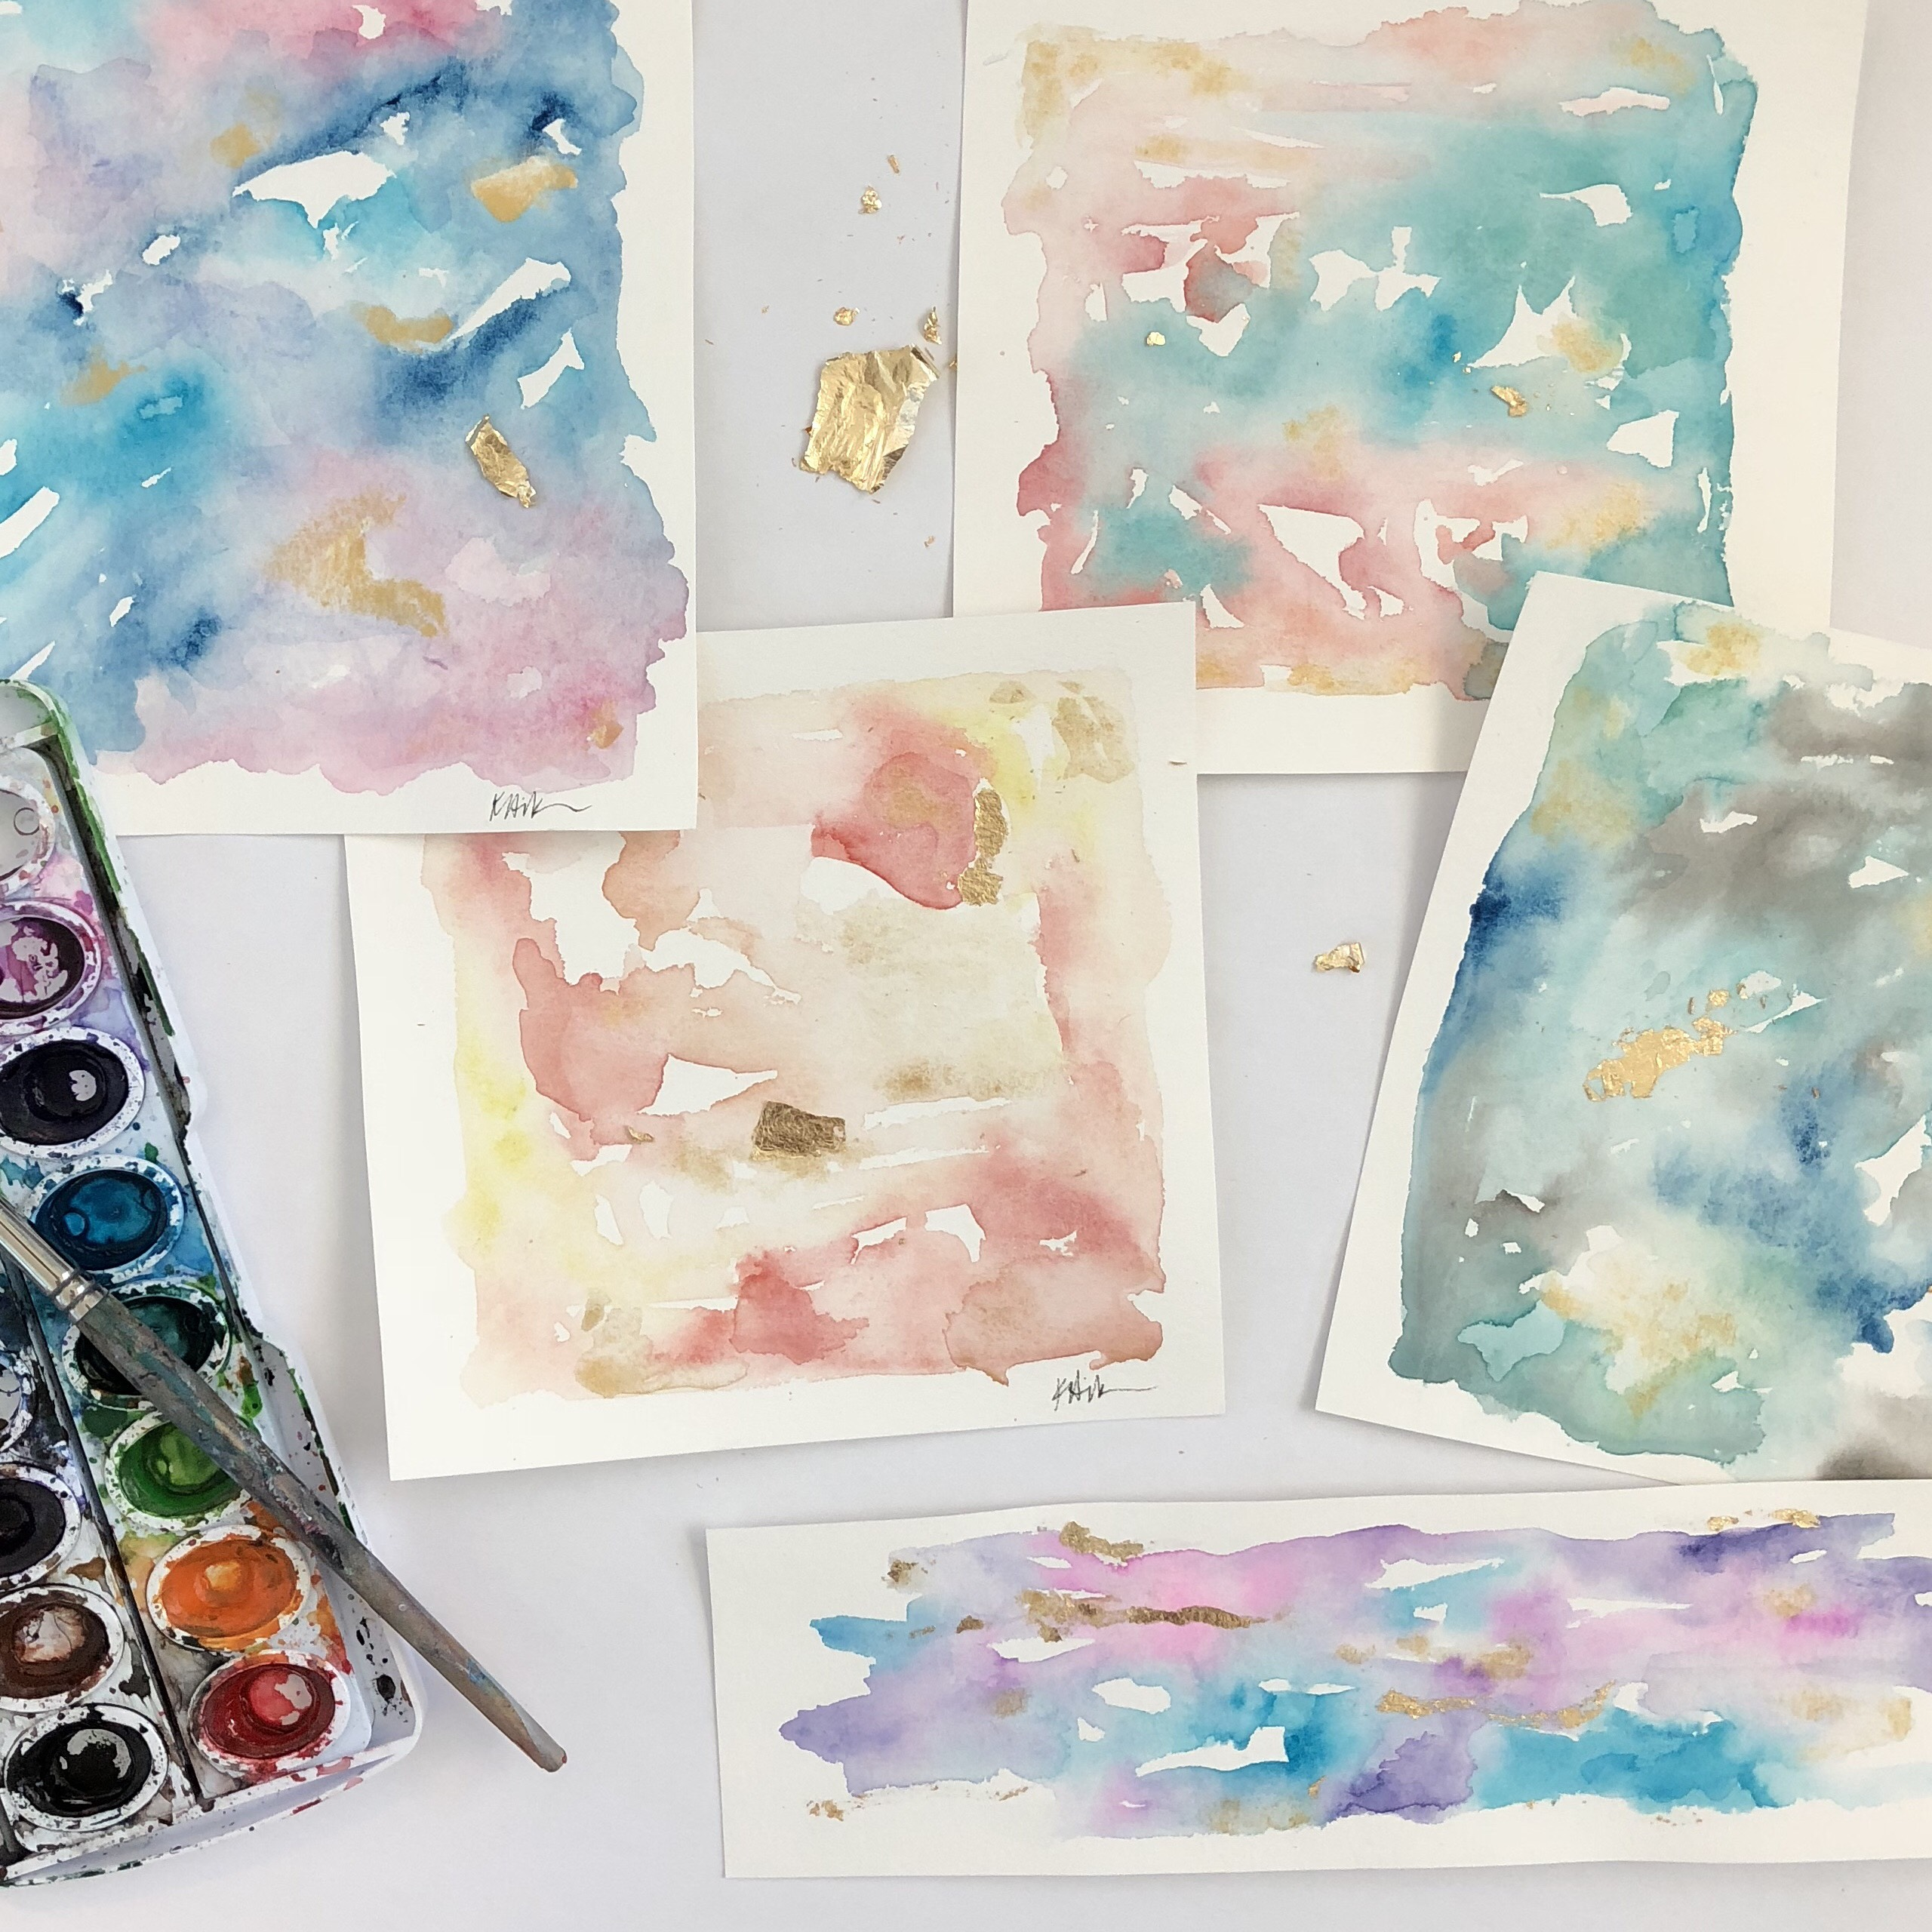 Abstract Watercolor Prints with Gold Leaf